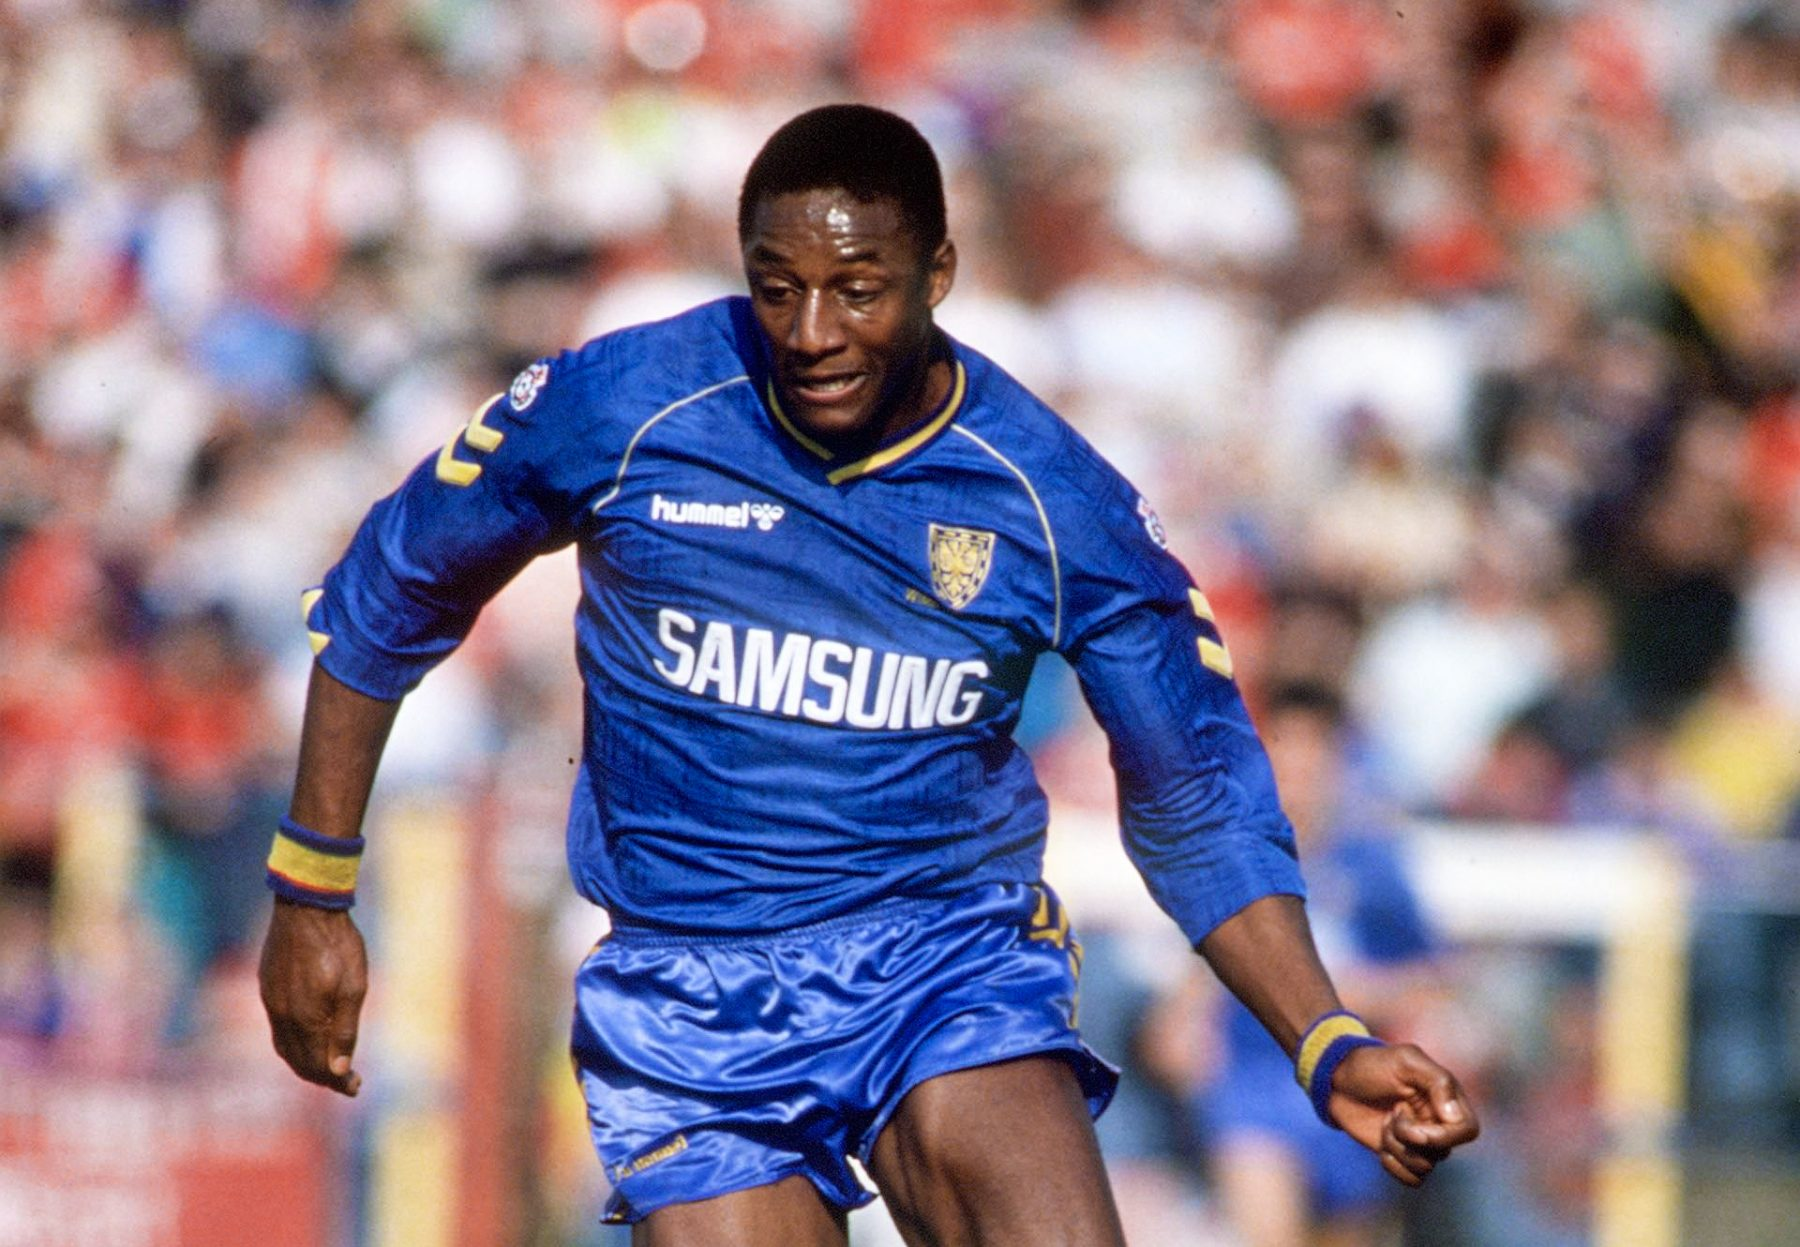 John Fashanu: the brutal but gifted footballer whose success gave way to scandal